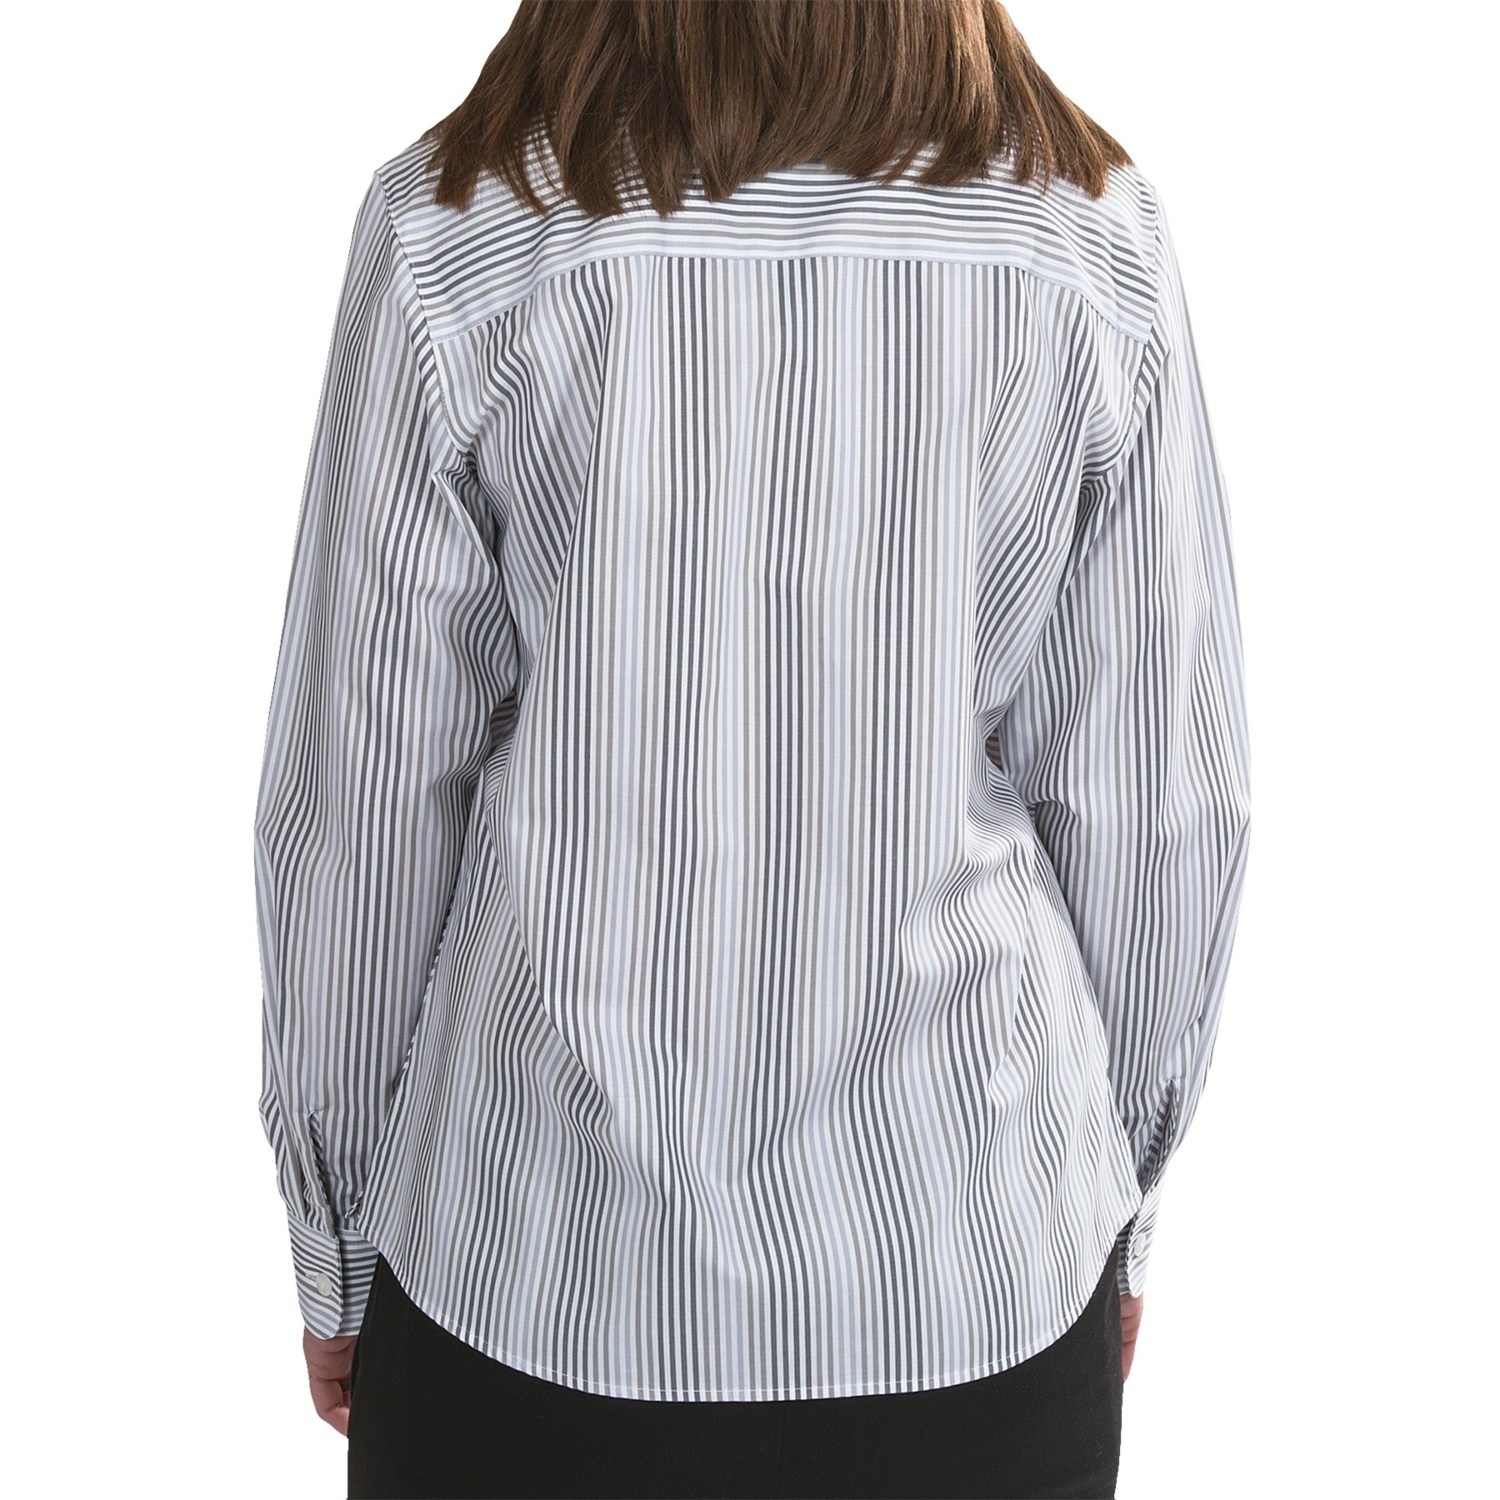 Foxcroft shaped oxford stripe shirt for women 6630m Wrinkle free shirts for women